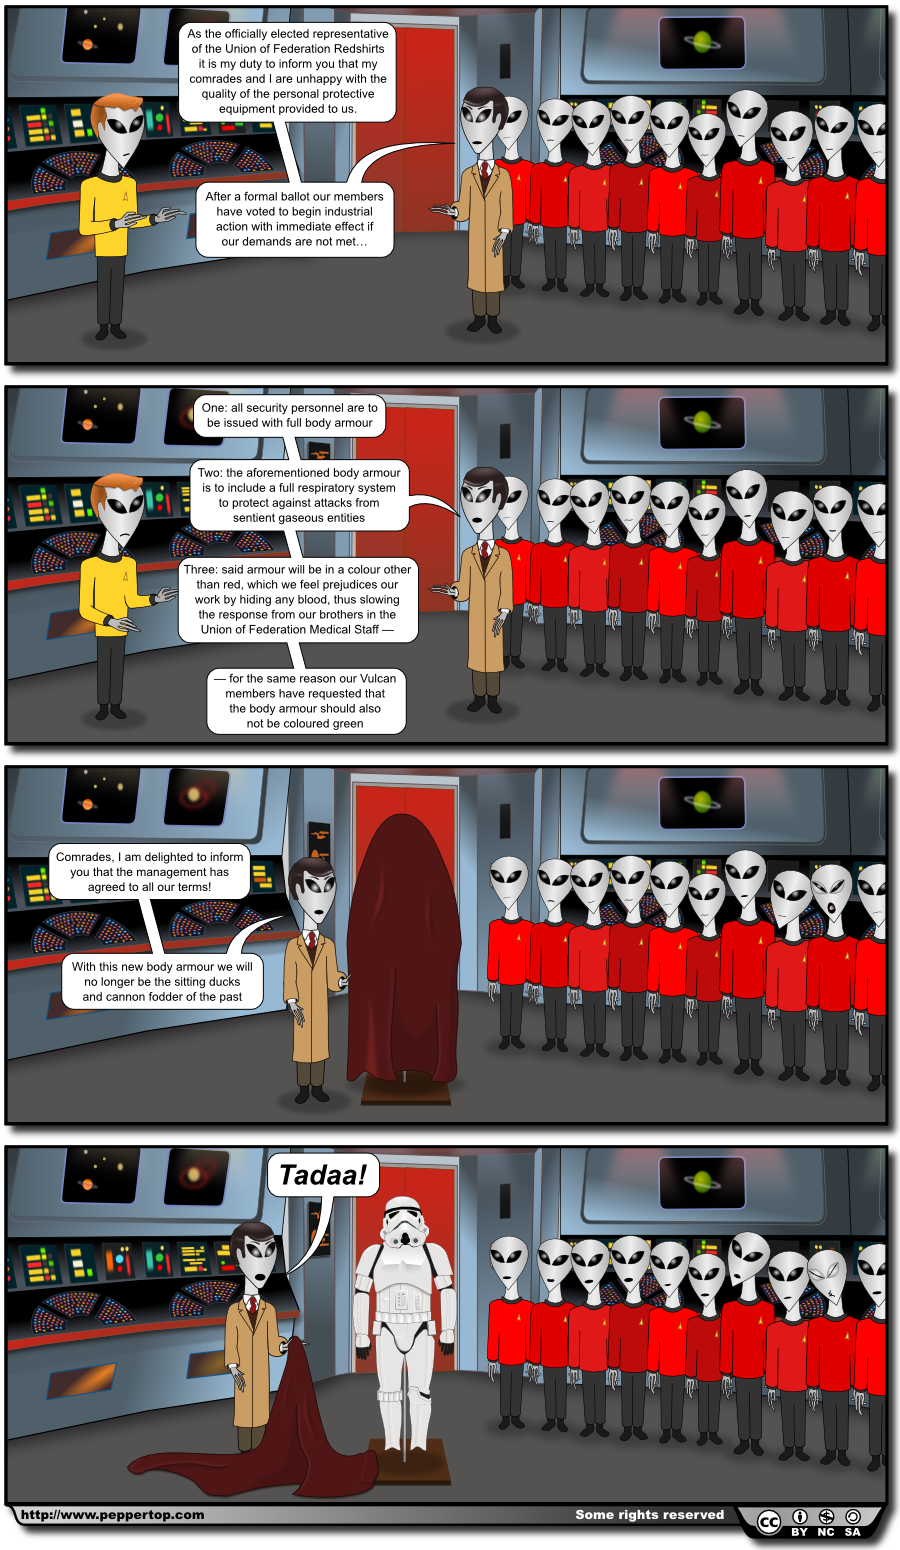 The Union of Federation Redshirts